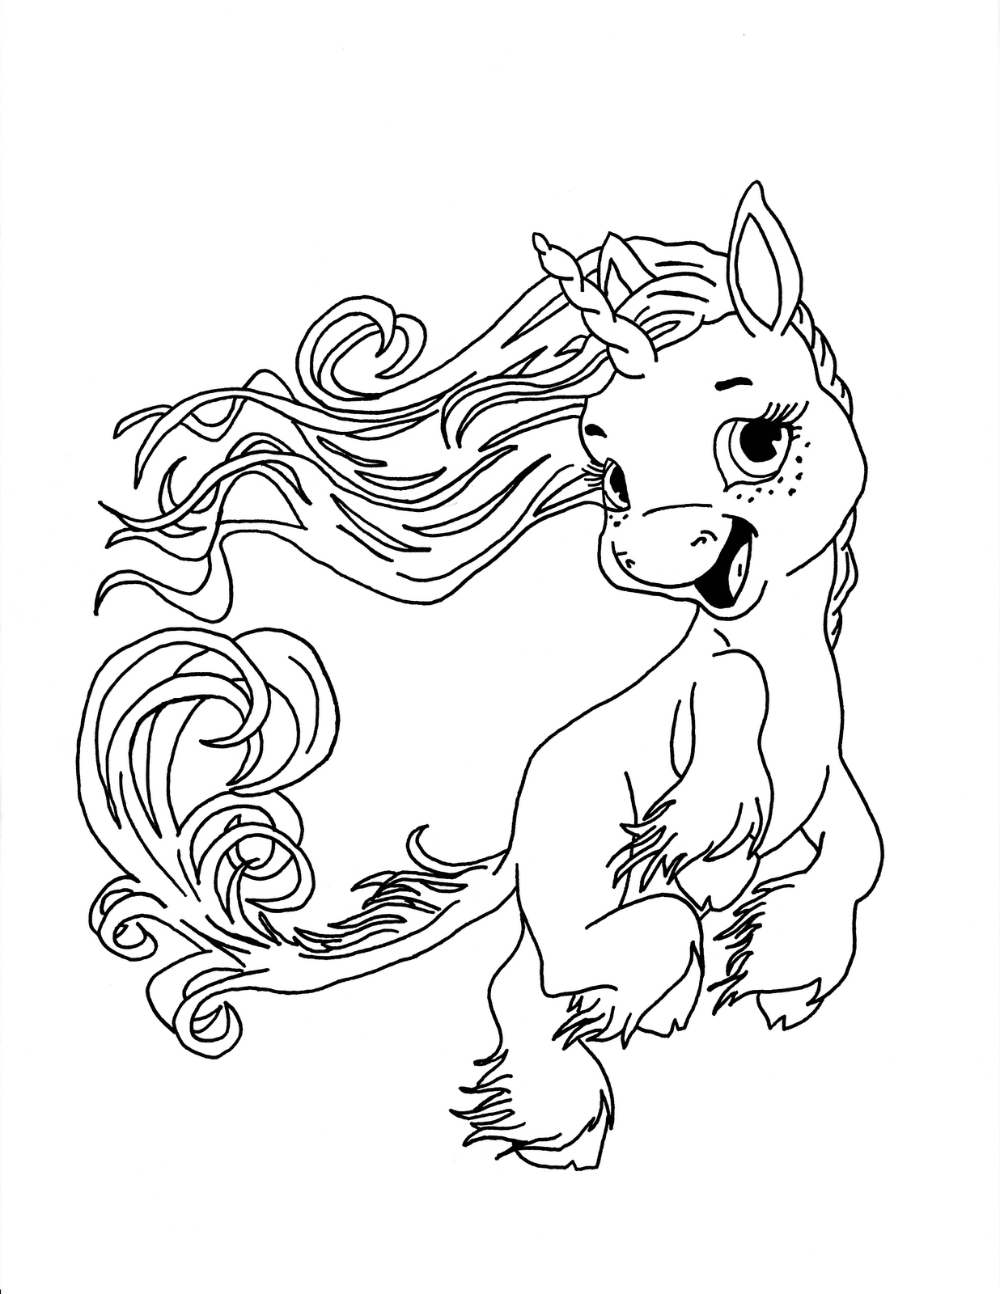 Baby Unicorn Coloring Pages Printable Shelter Unicorn Coloring Pages Fairy Coloring Pages Cartoon Coloring Pages